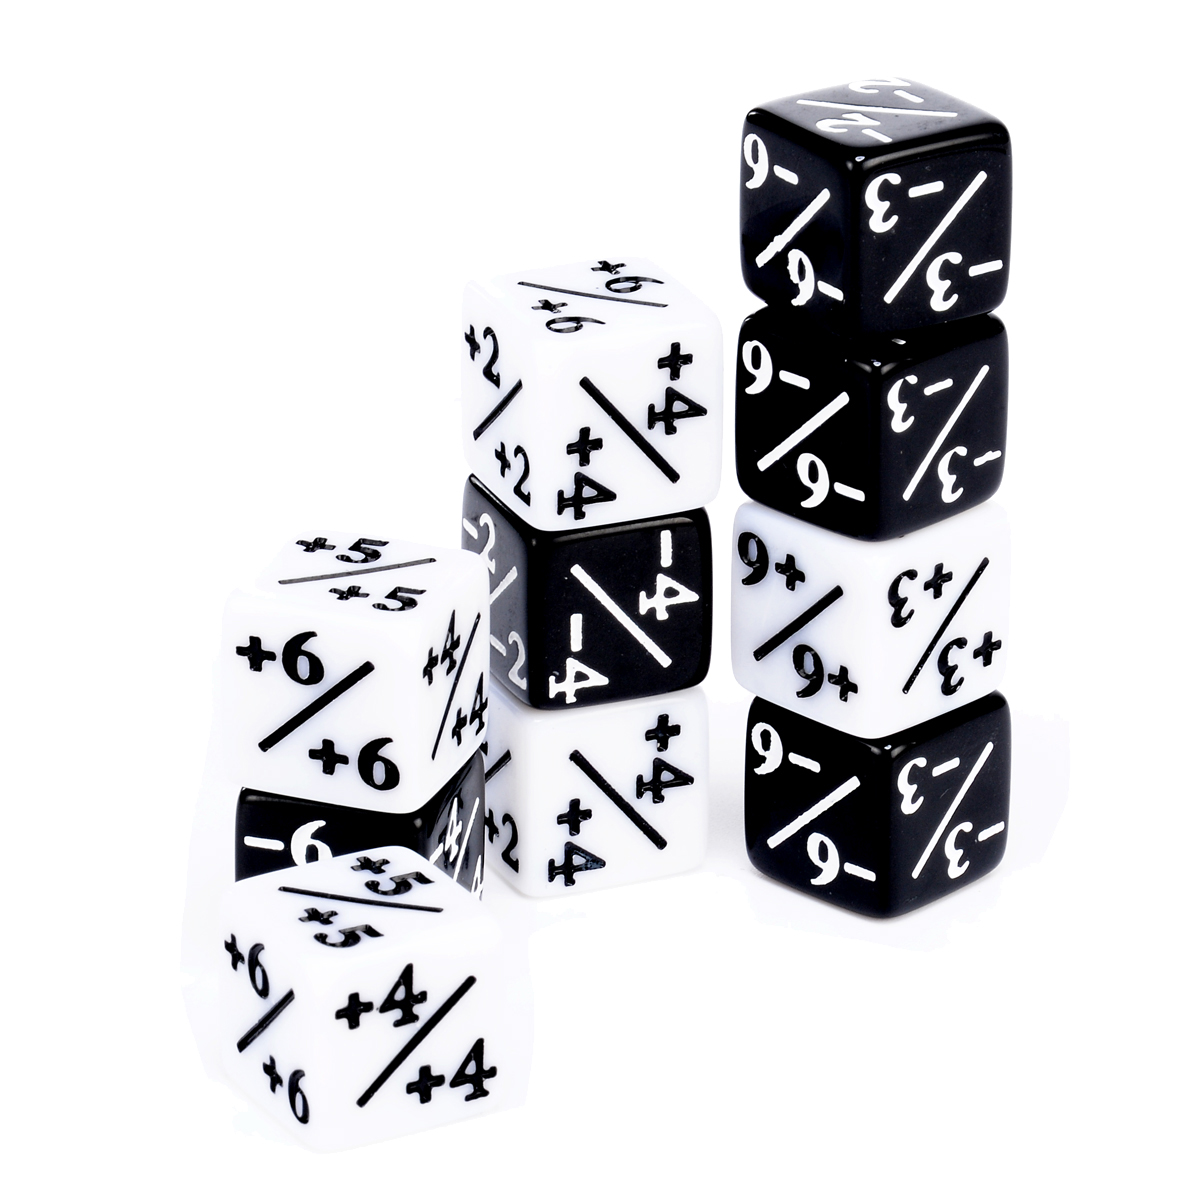 10x Counters Dice 5 Positive +1/+1 & 5 Negative -1/-1 For Magic Gathering Games Table Board Interesting Gaming Party Bar Dice